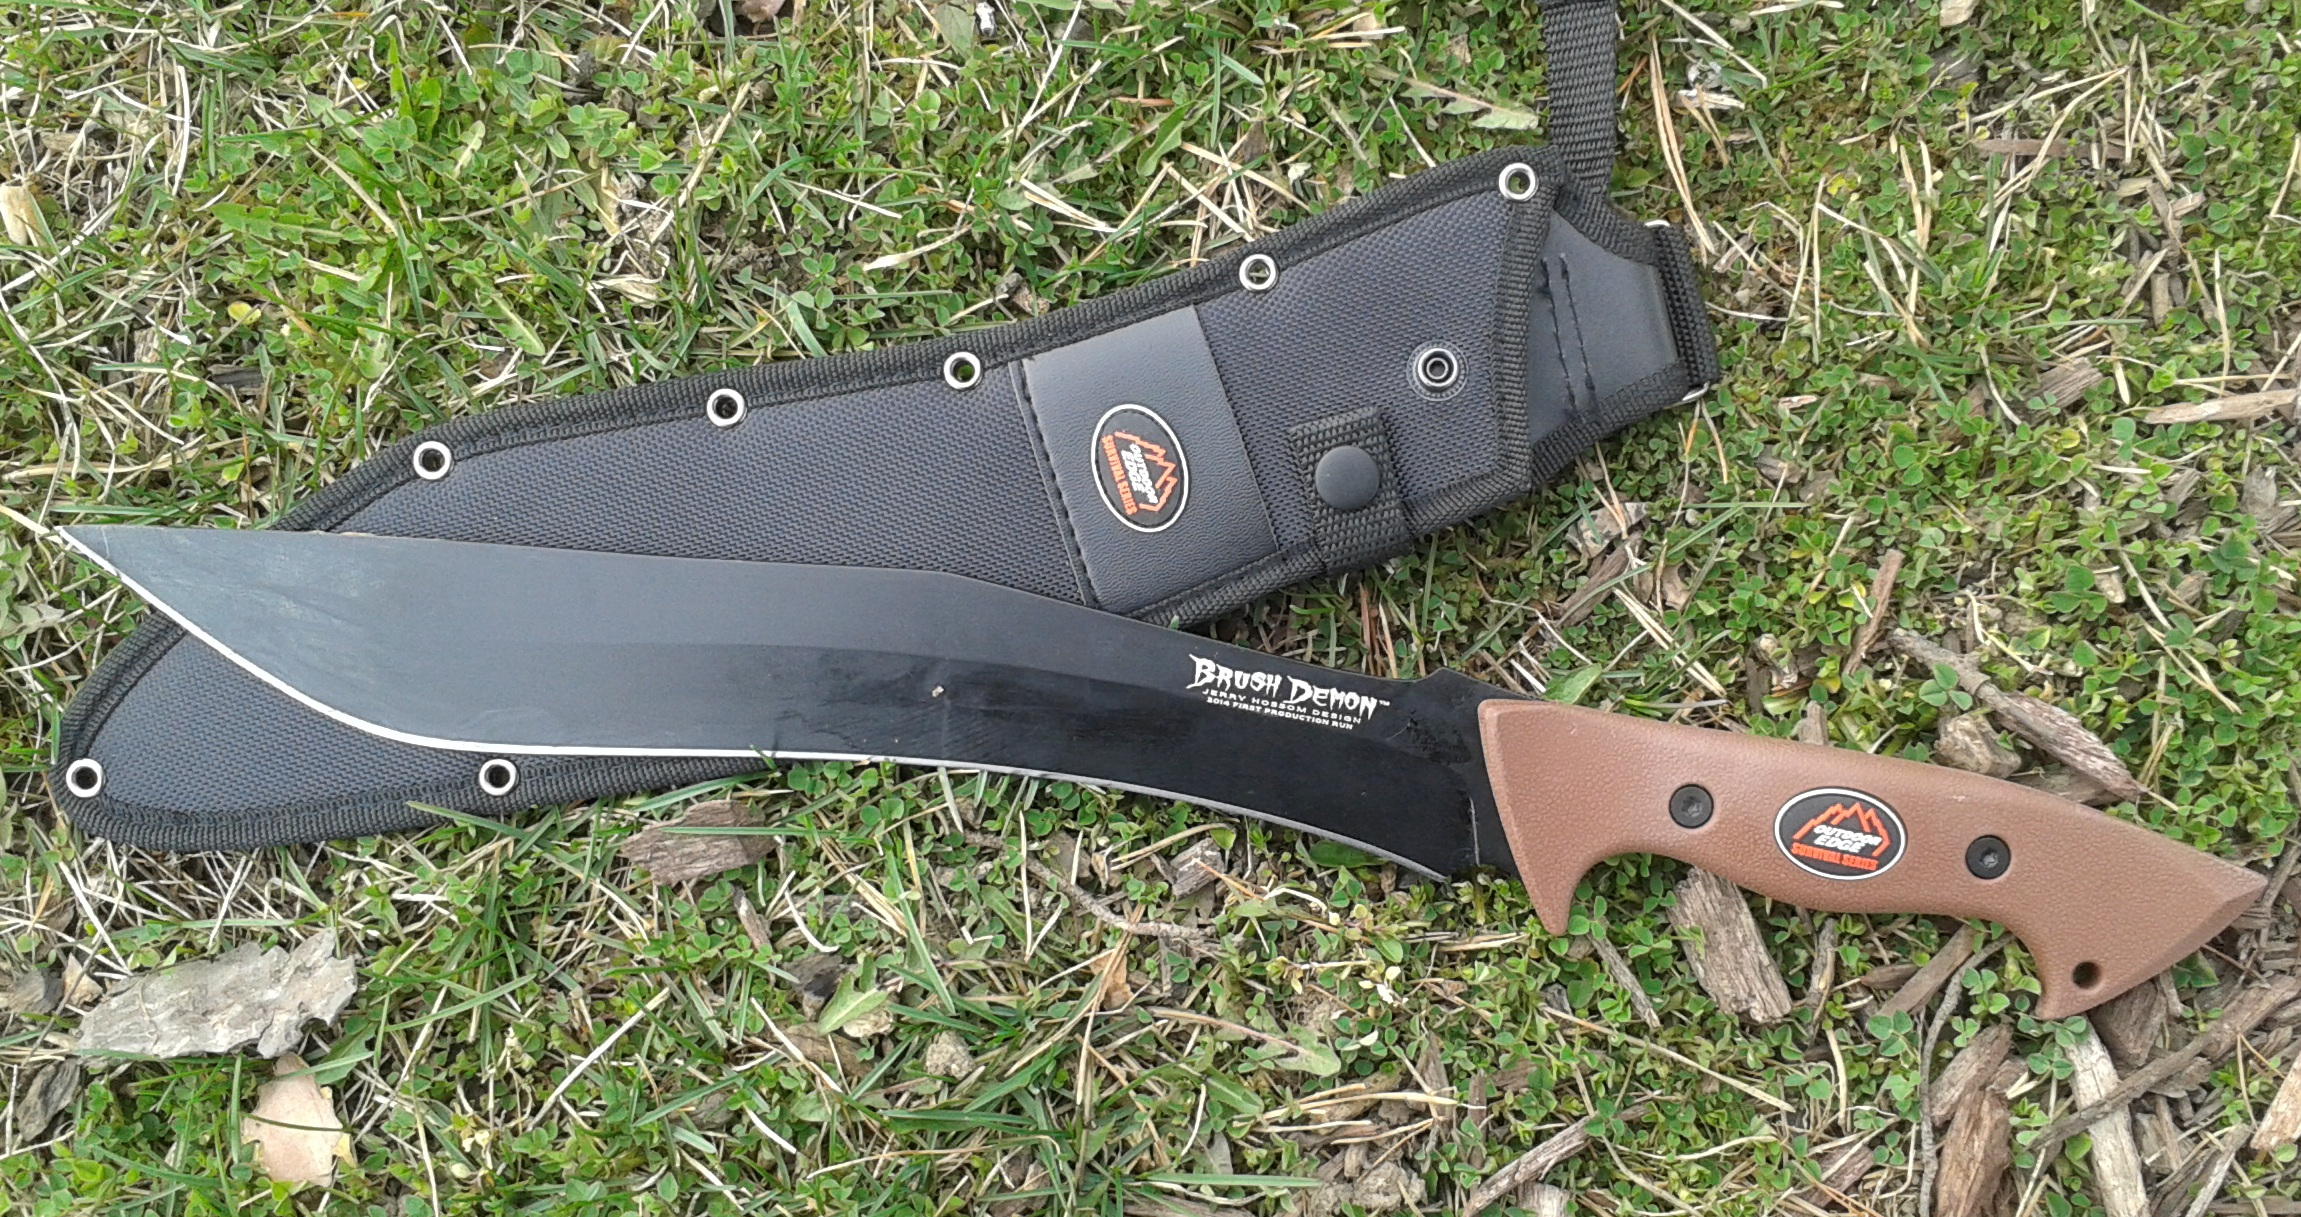 10 New Outdoor Knives And Tools To Keep An Eye On In 2015